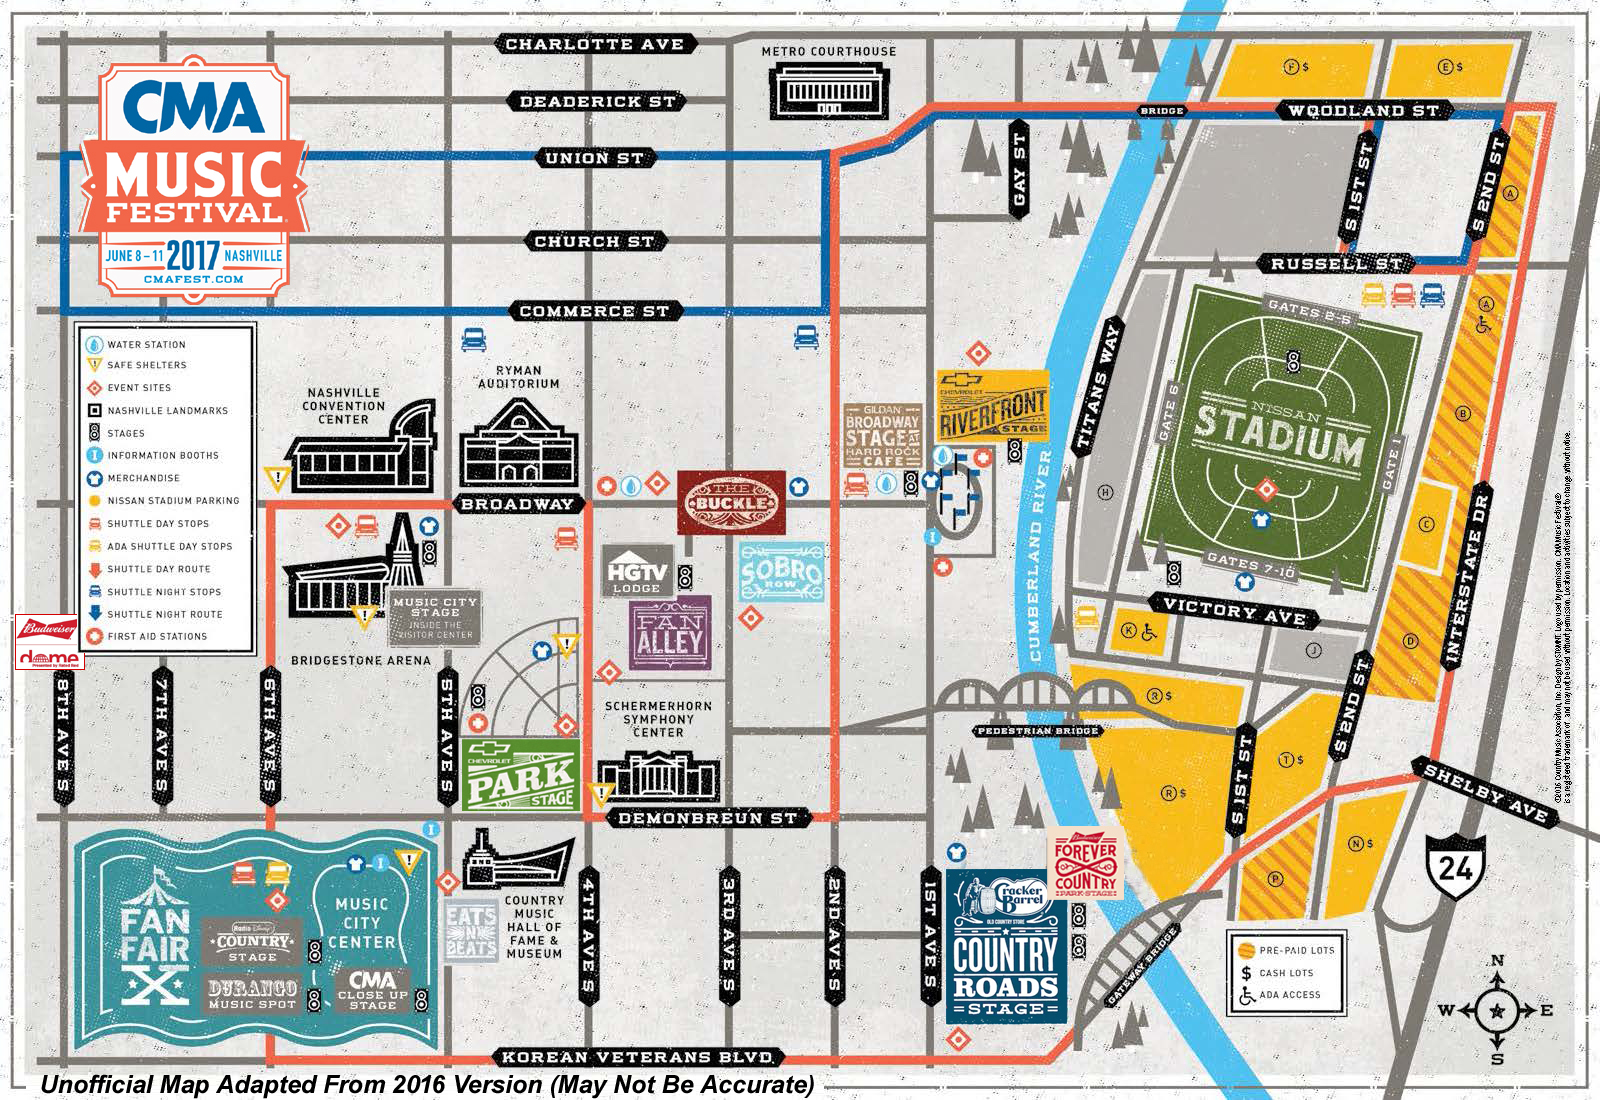 Since The Cma Hasnt Seen Fit To Release This Years Festival Map We Took The Liberty Of Updating Last Years This Is An Unofficial Map That May Not Be